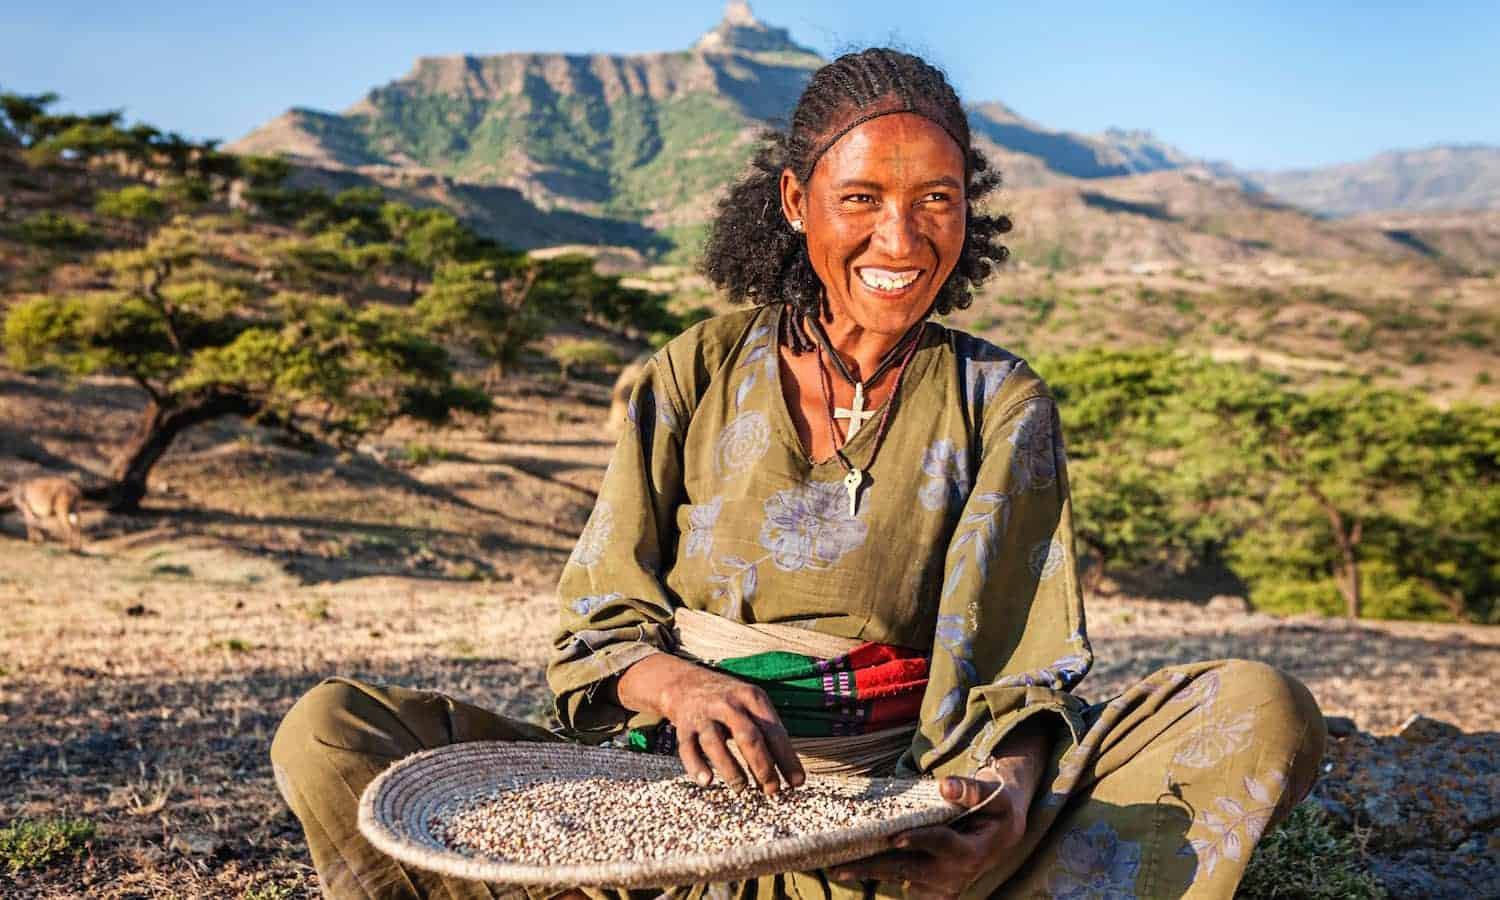 On International Day of the World's Indigenous Peoples, we are celebrating indigenous peoples' role in building a more resilient food system.